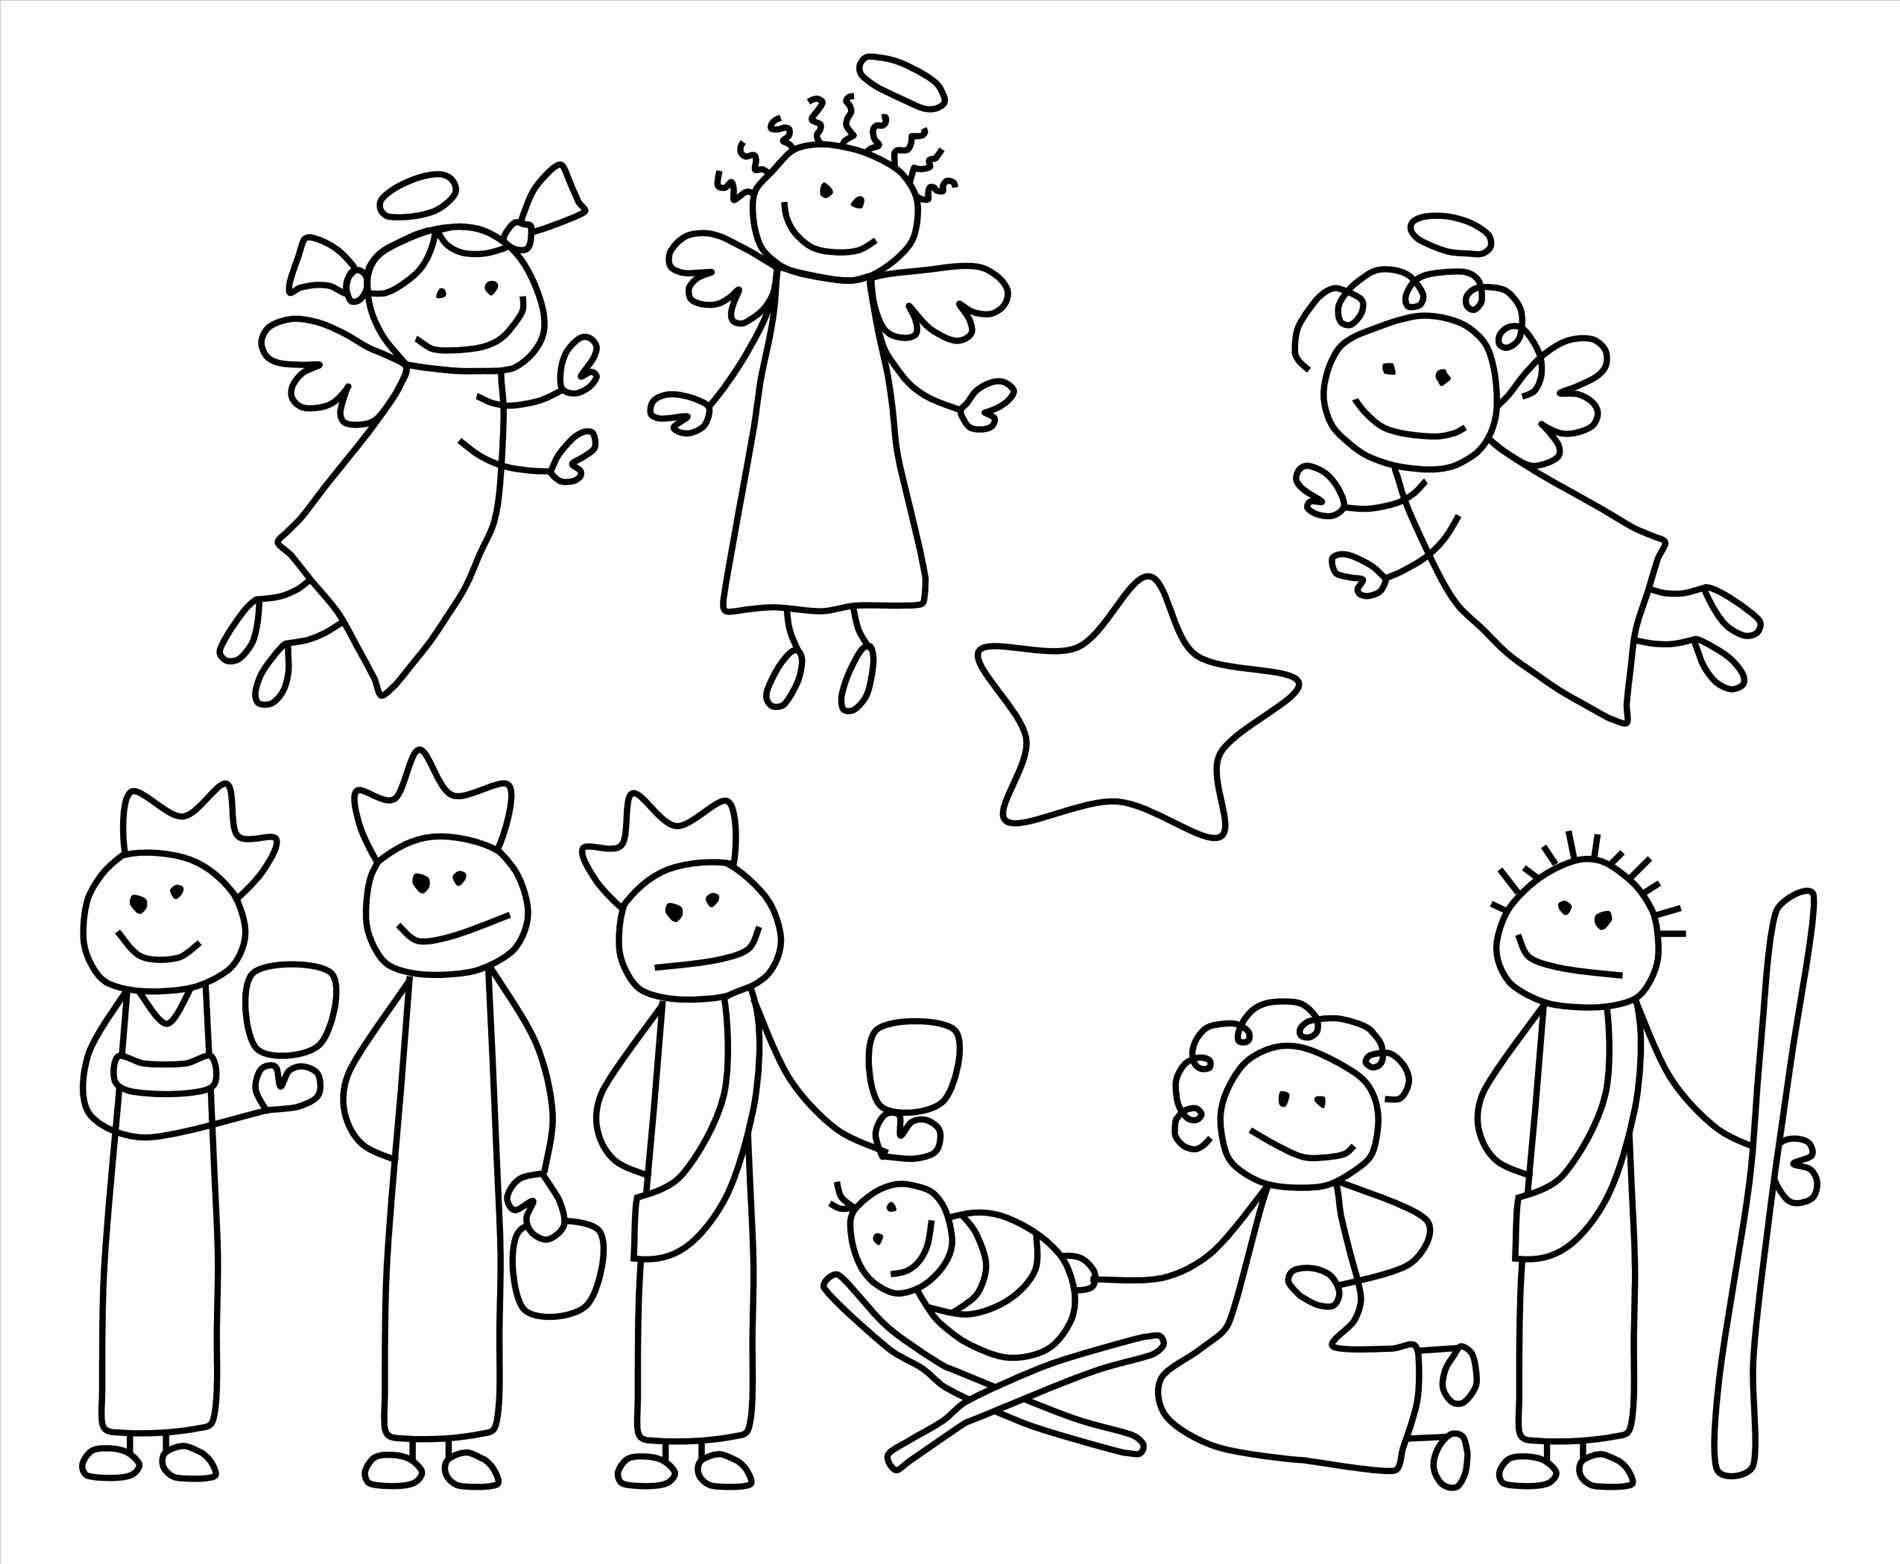 Christmas Scene Drawing For Kids.Christmas Drawing For Children At Getdrawings Com Free For